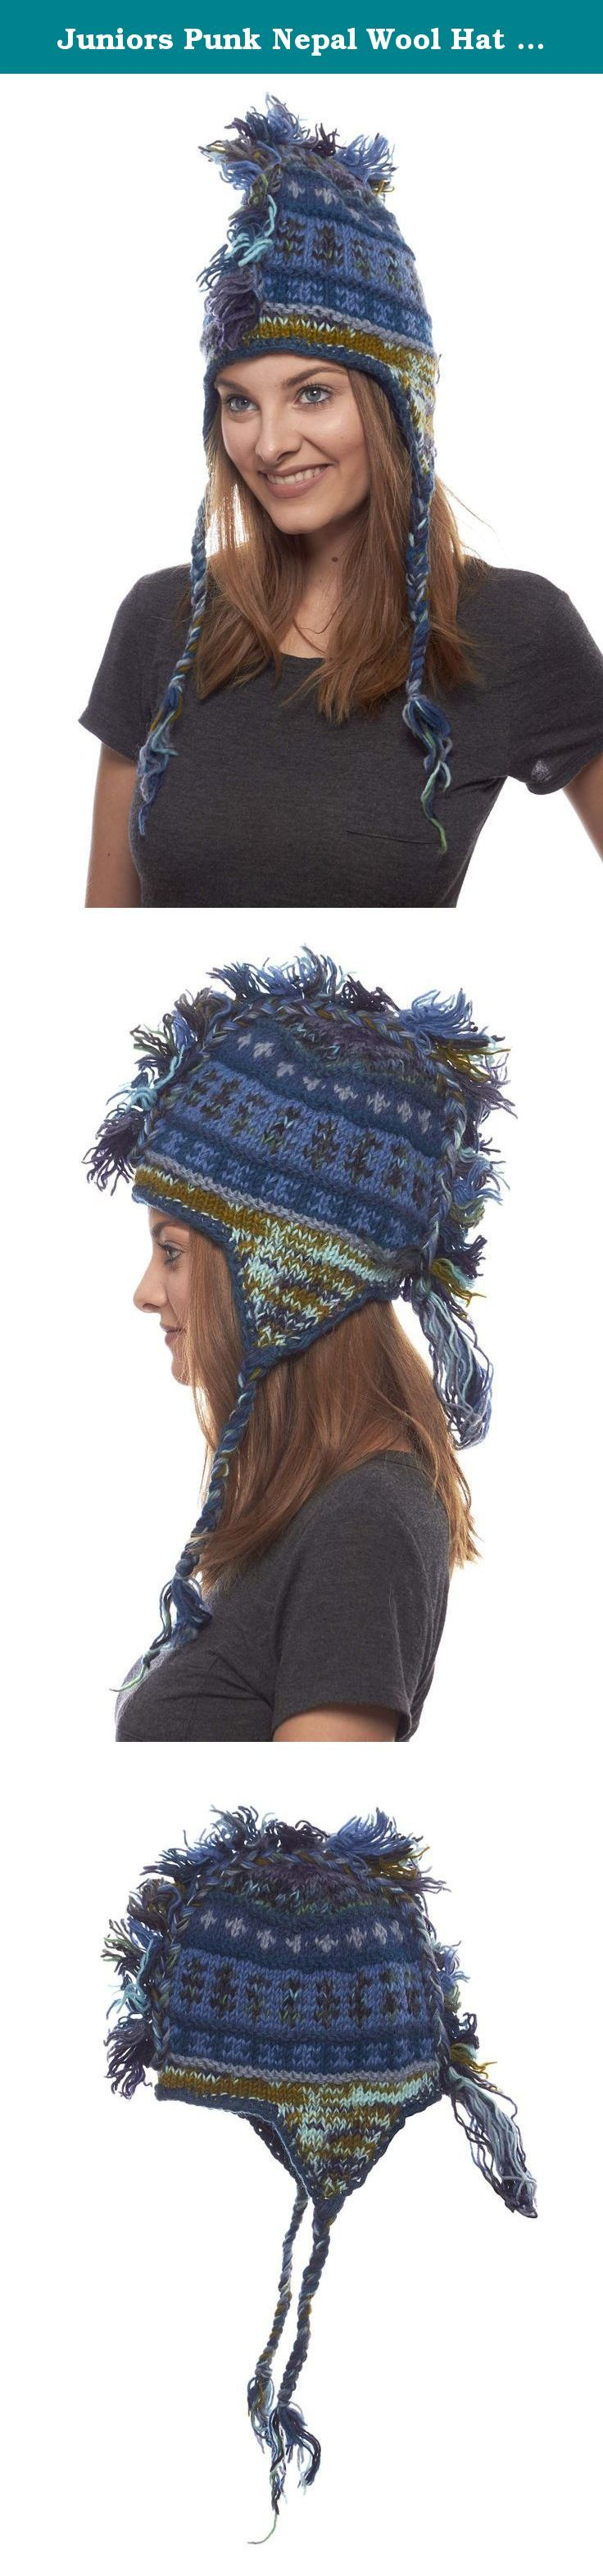 Juniors Punk Nepal Wool Hat with Mohawk, Blue Mix. When the winter winds are making it feel like the slopes of Mount Everest, any young lady can stay warm with some attitude in this wool hat featuring an edgy yarn mohawk. Hand knitted in Nepal, this hat is full of brilliant colors and the energy of that beautiful land. It features numerous decorative and color options, all with a fierce mohawk accent. Choose between subtle geometric patterns, a range of mixed designs, and multicolored...